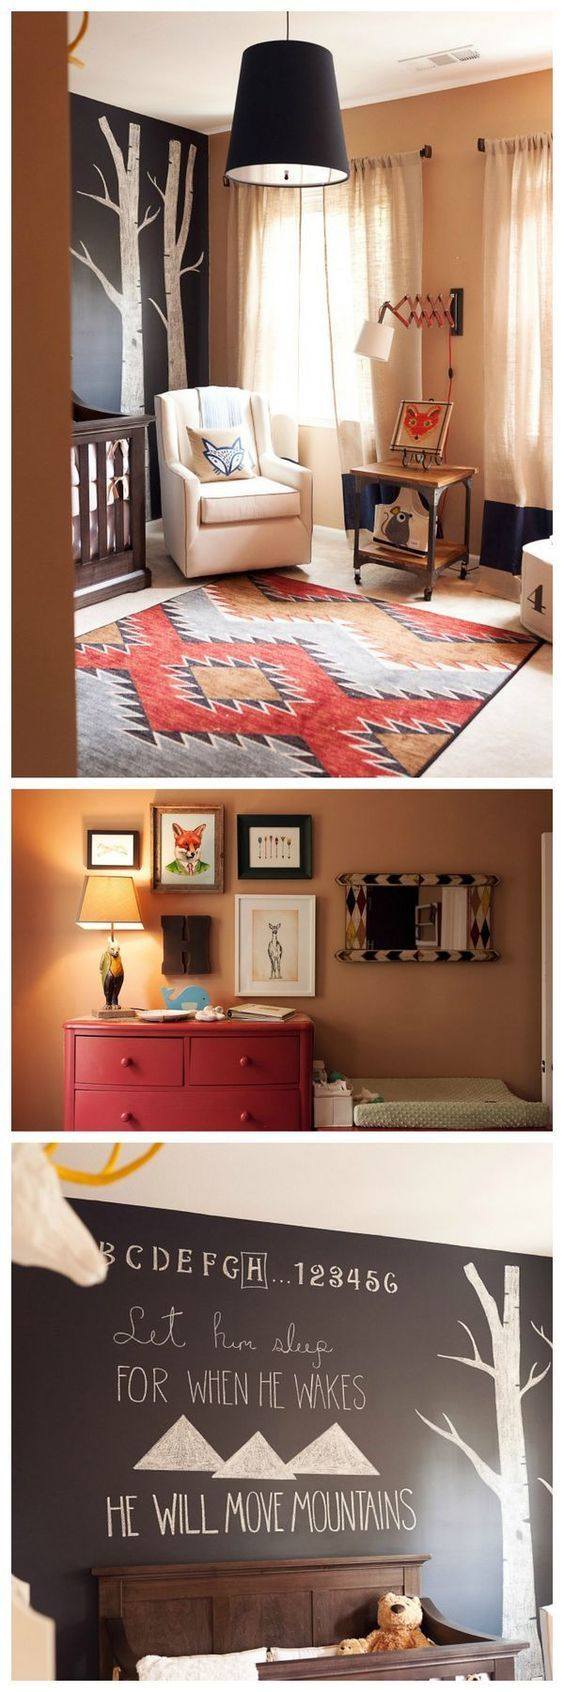 Modern Woodland Nursery with Fox Decor - so many fab details in this space! trendy family must haves for the entire family ready to ship! Free shipping over $50. Top brands and stylish products